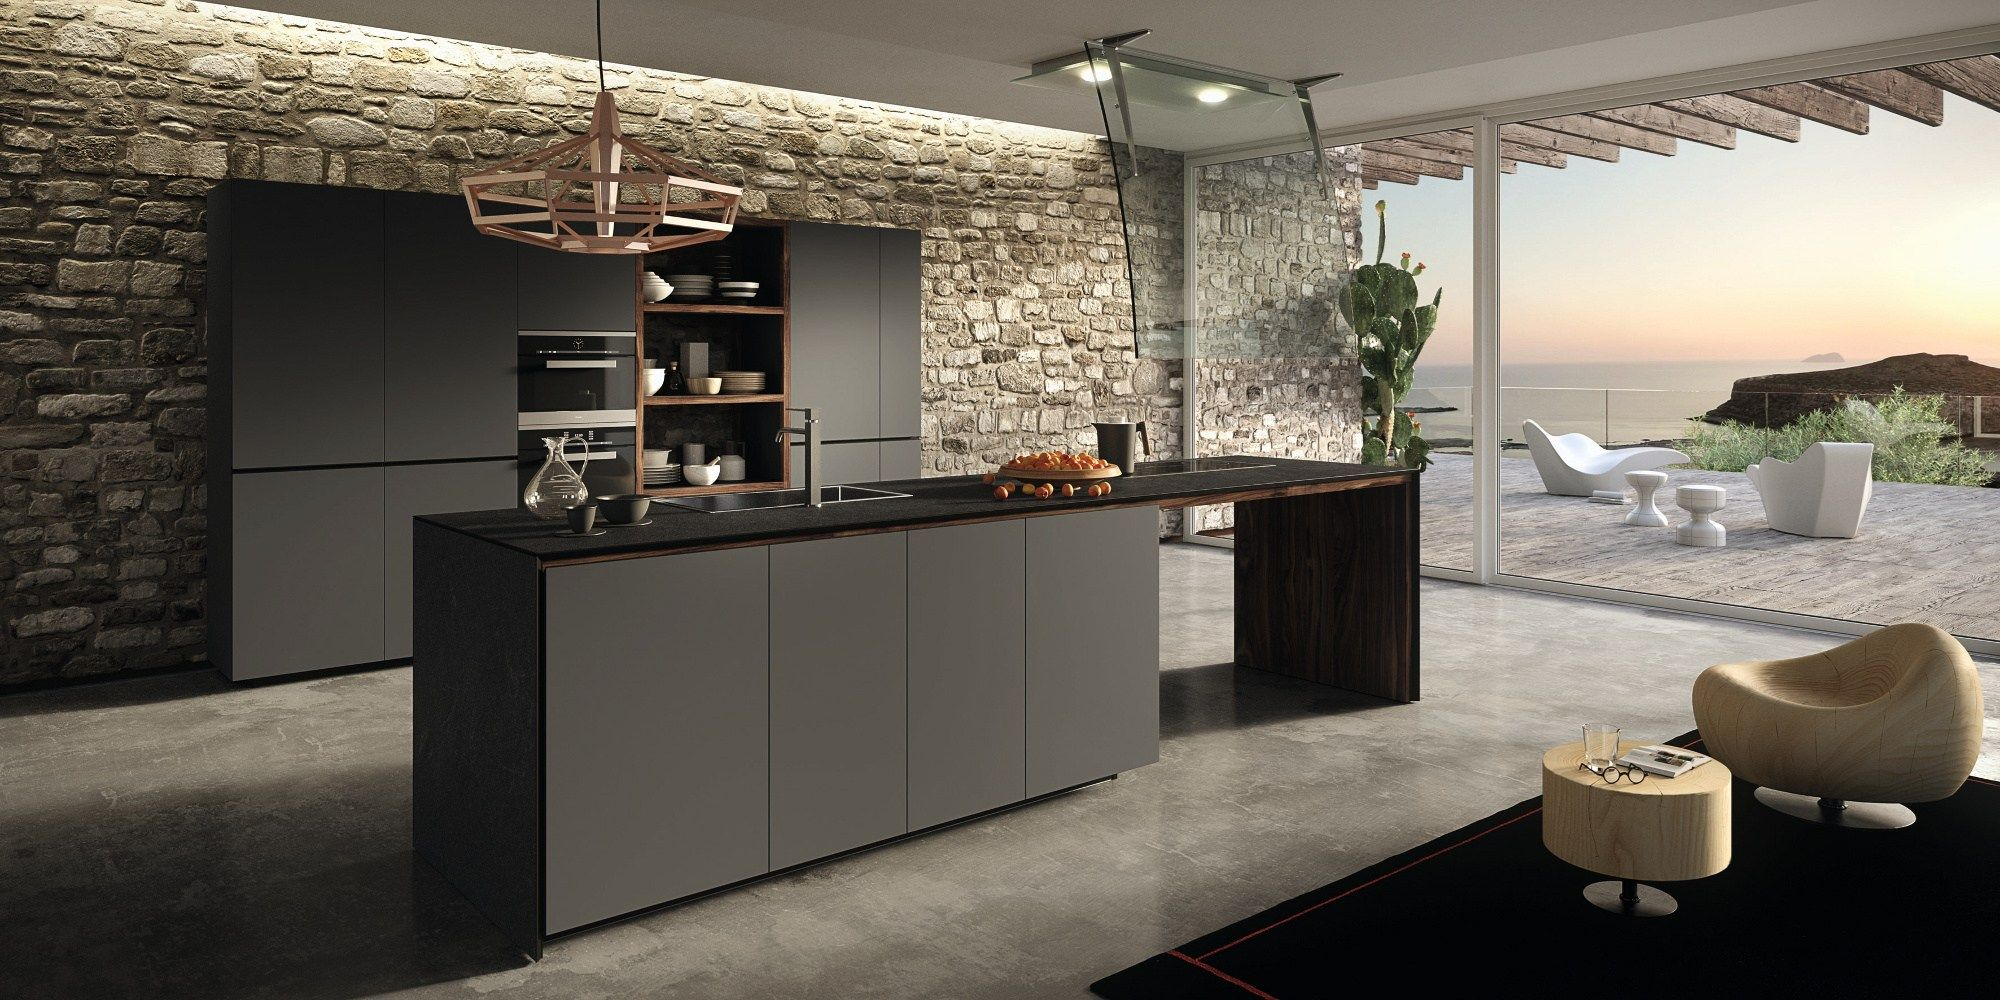 Moderne Küche Im Chalet Functionality Ergonomics Sustainability Valcucine At Imm Genius